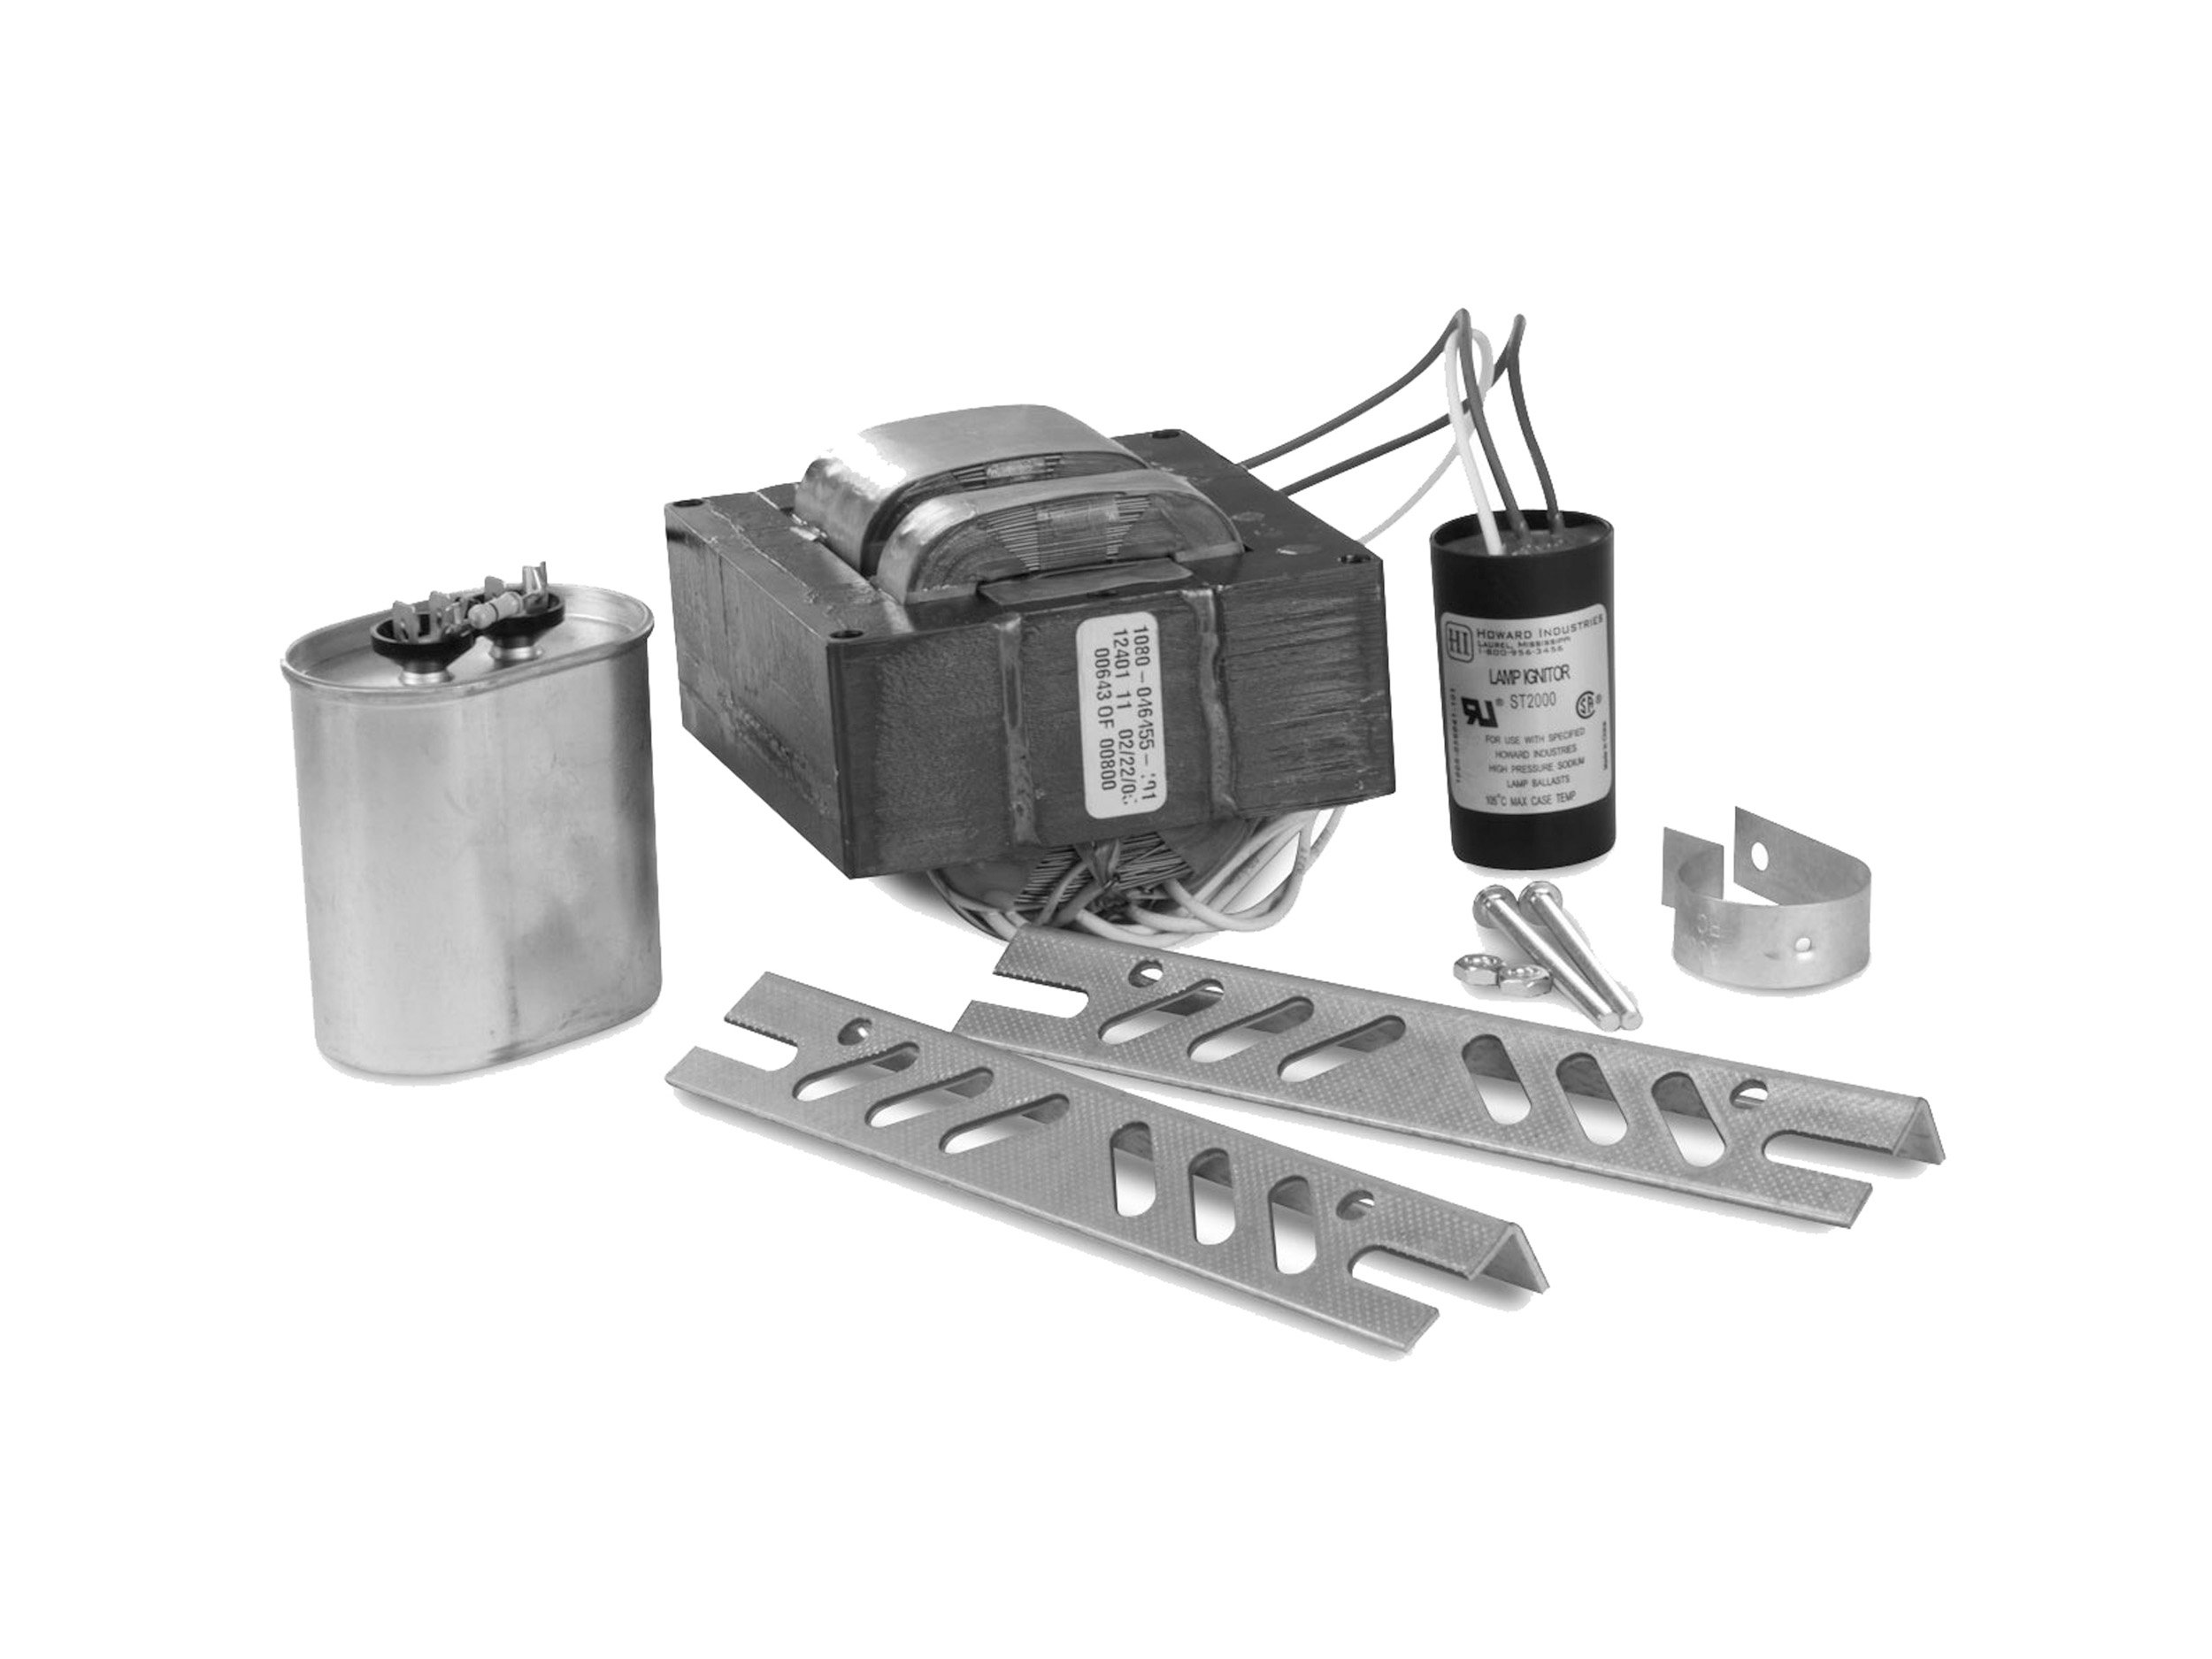 Howard Lighting S-70-120-RXH-K 70W 120V High Pressure Sodium Ballast Kit